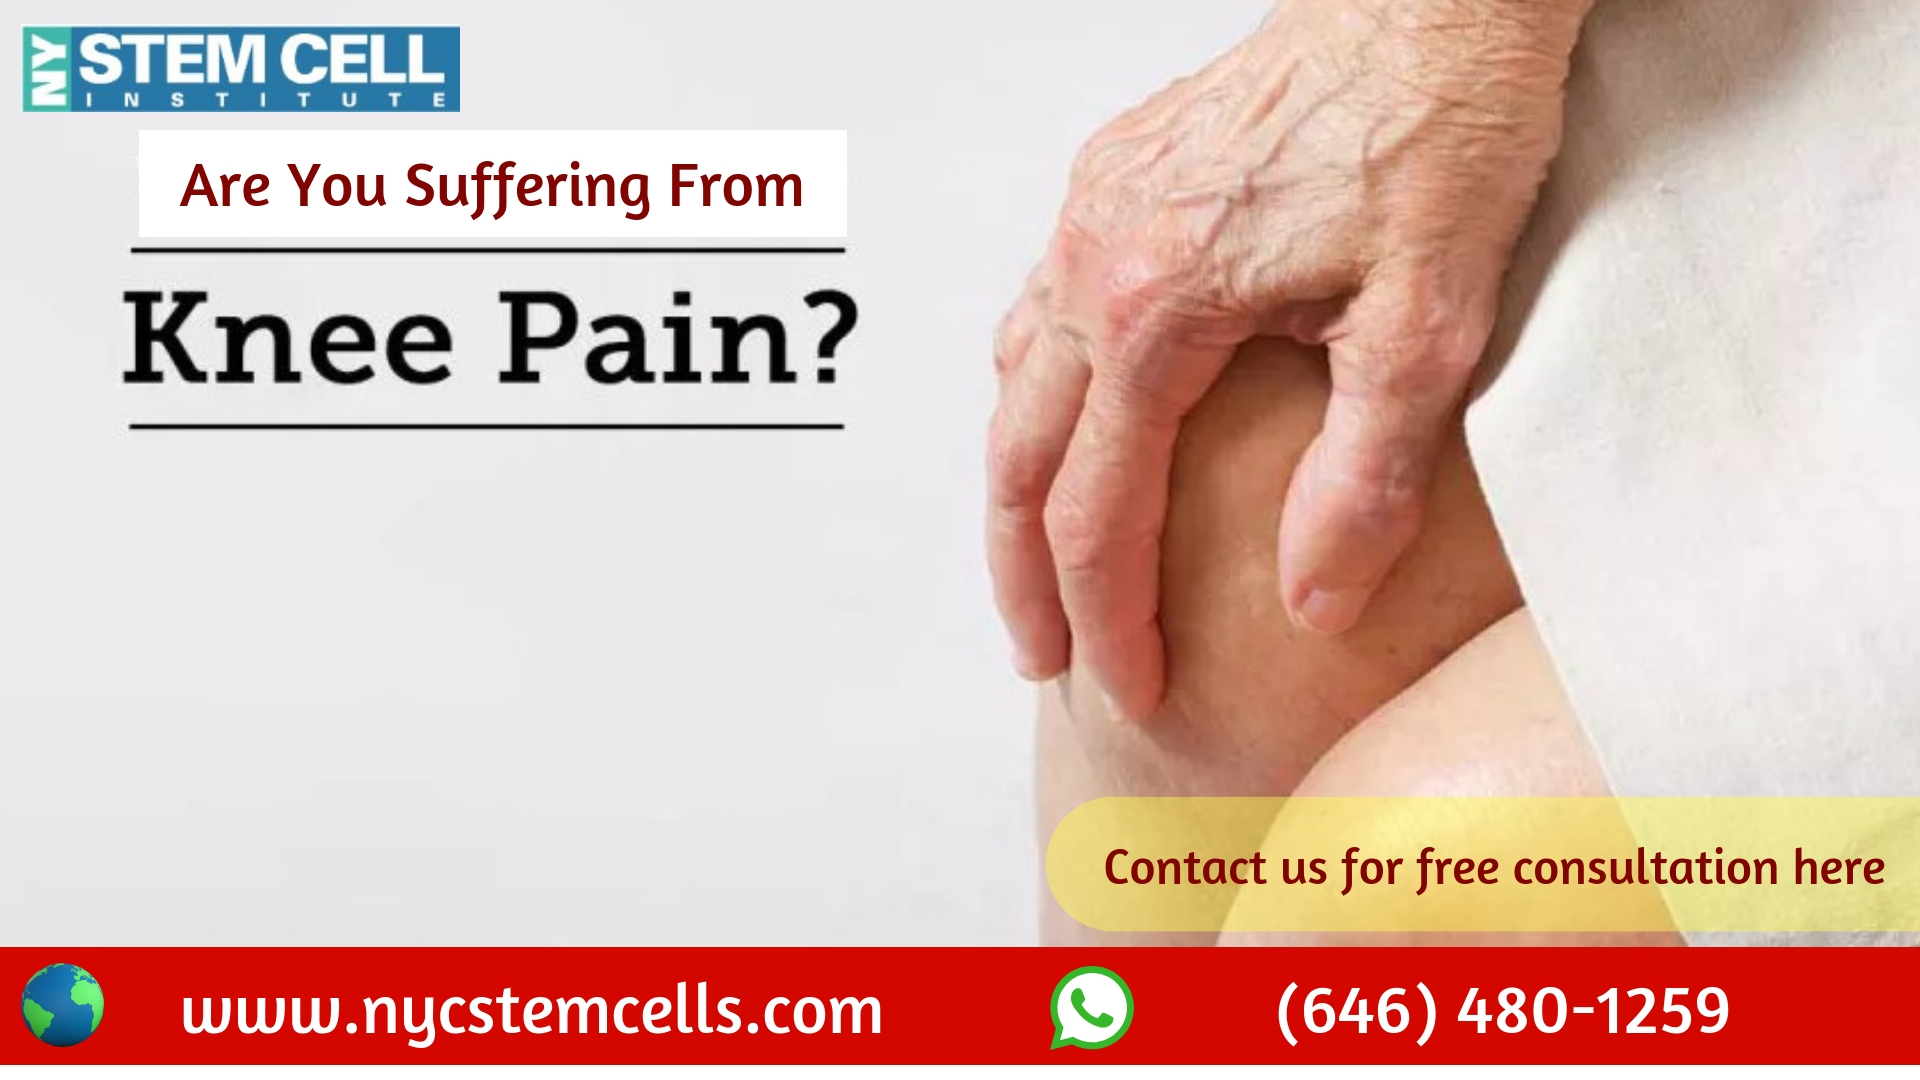 Stem Cell Therapy in NYC - Best Treatment Option for Knee Pain Relief